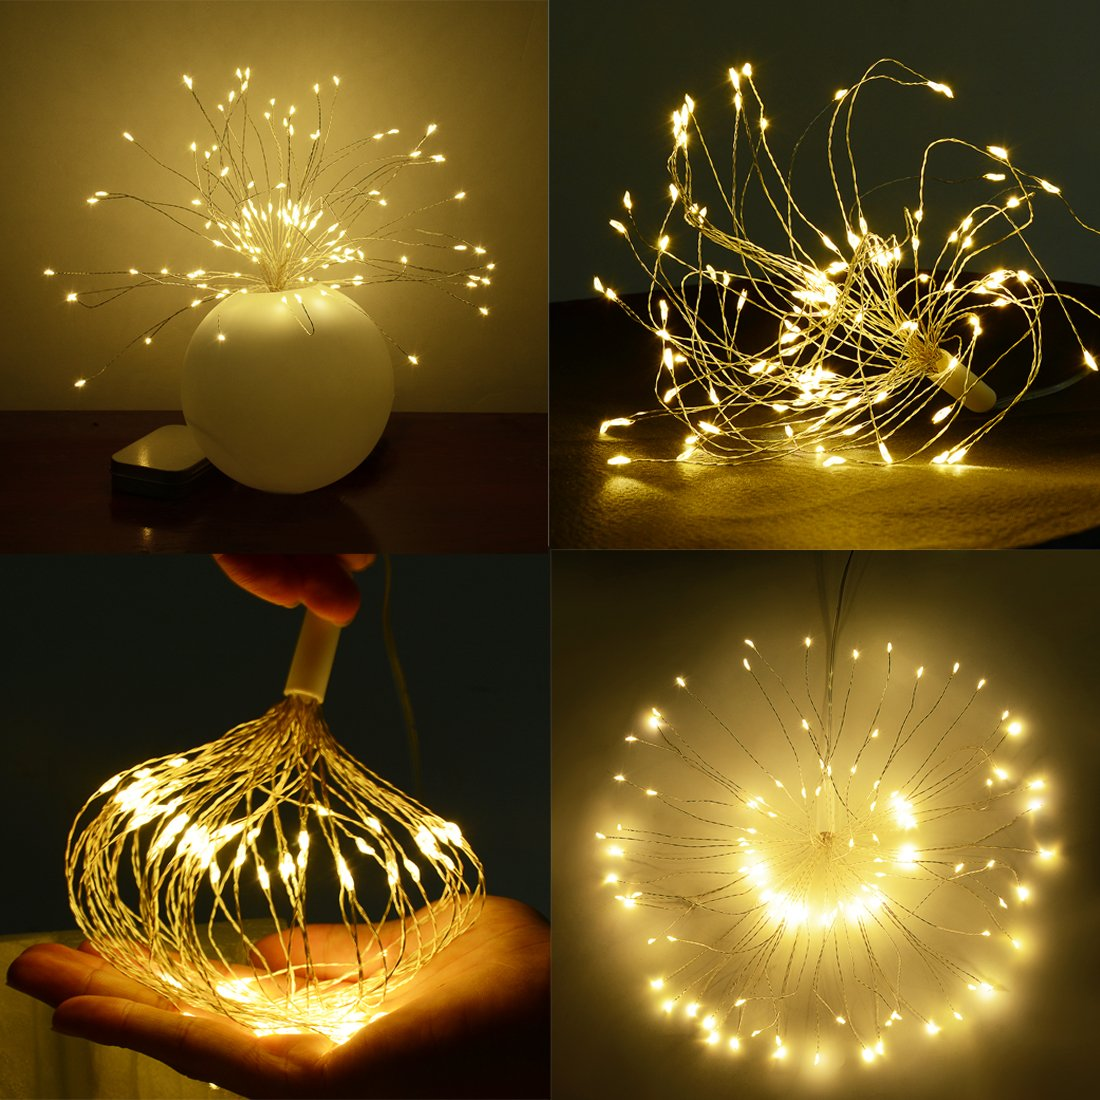 LED String Light,2 Pack Battery Operated Hanging Starburst Light 120 LED Bouquet Shape lights,Fairy Twinkle Light 8 Modes Dimmable with Remote Control,Decoration for Outdoor Home Patio(Warm White) by Elitlife (Image #4)